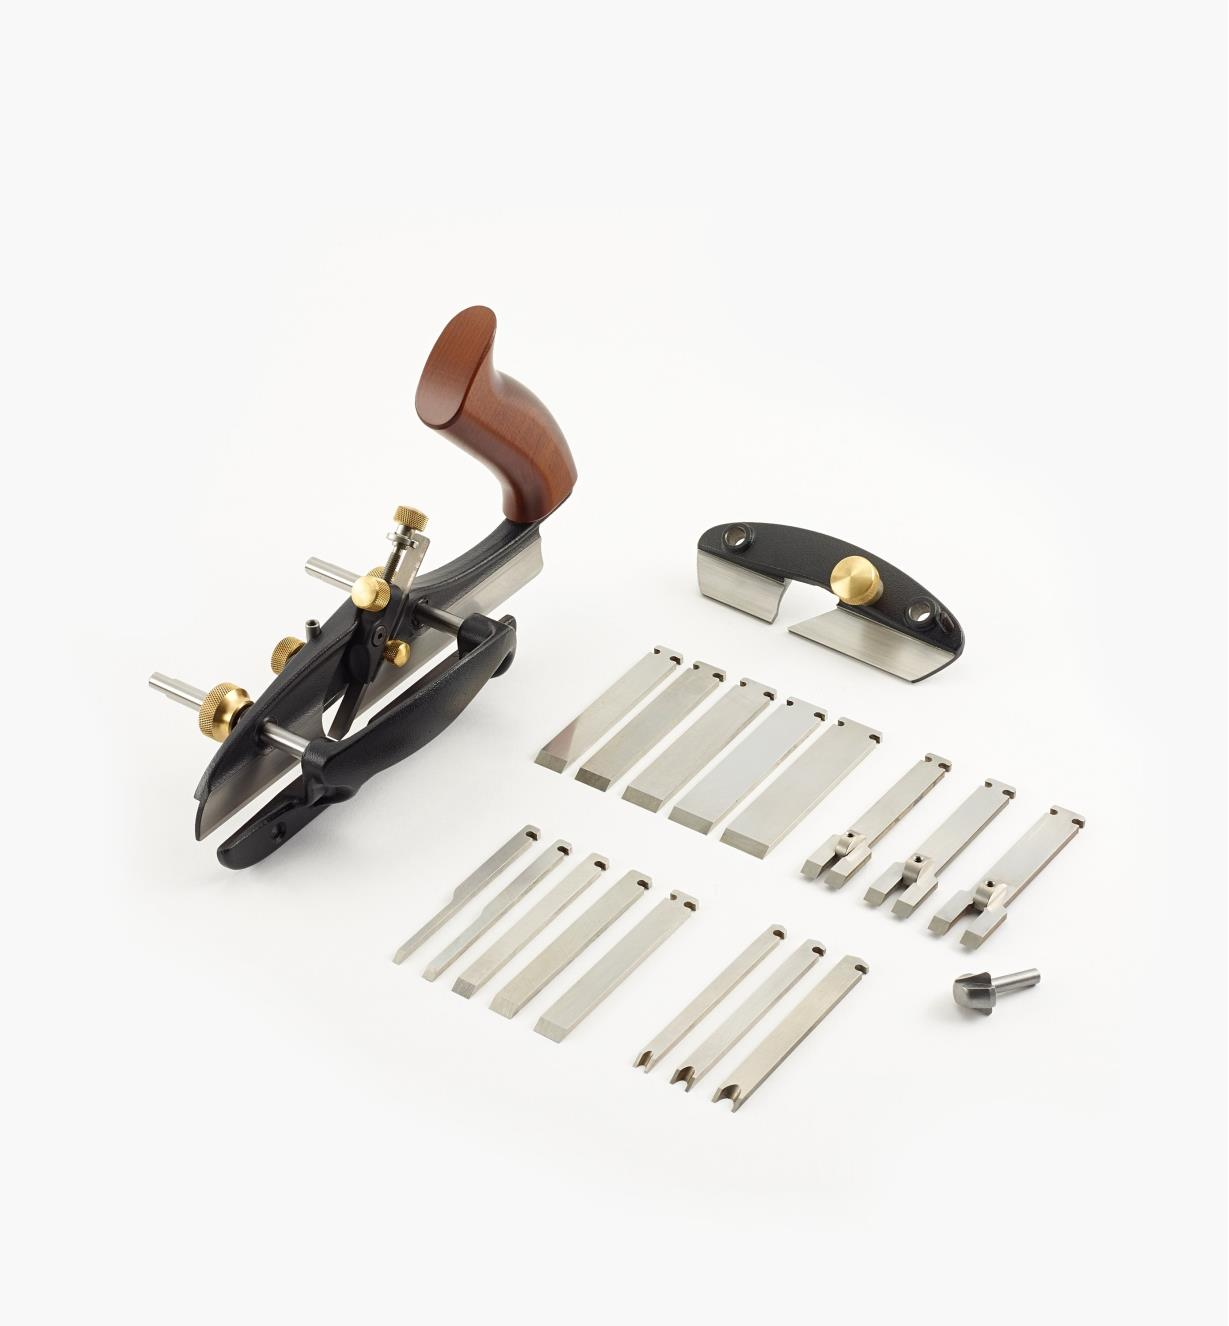 Small plow plane includes 11 straight blades, three tongue-cutting blades, three beading blades and a wide-blade conversion kit.